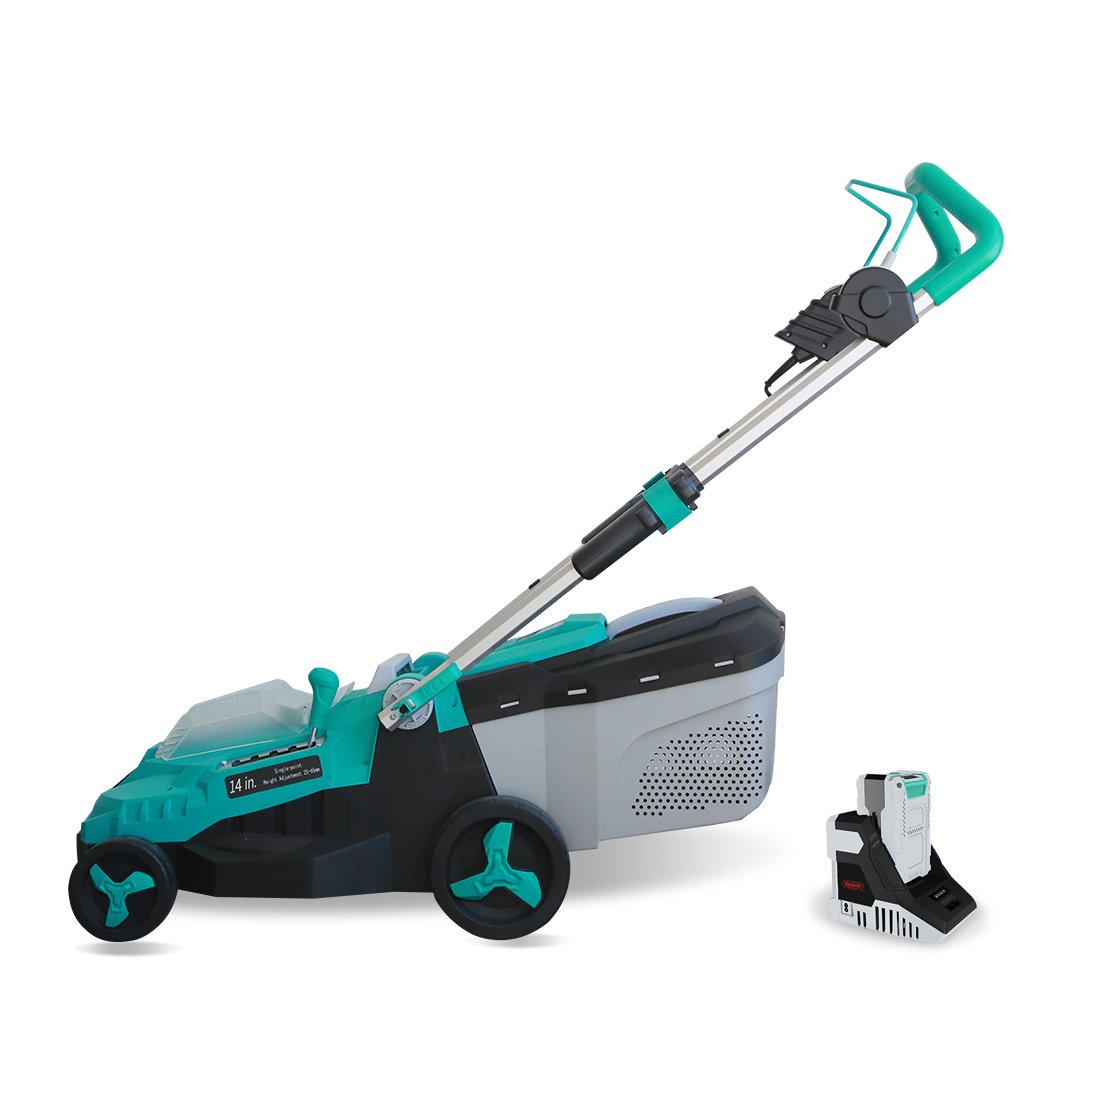 Realm 14-Inch 40V Lithium-Ion Cordless Lawn Mower, 4.0 AH Battery Included RM-LM01-B2Z-340